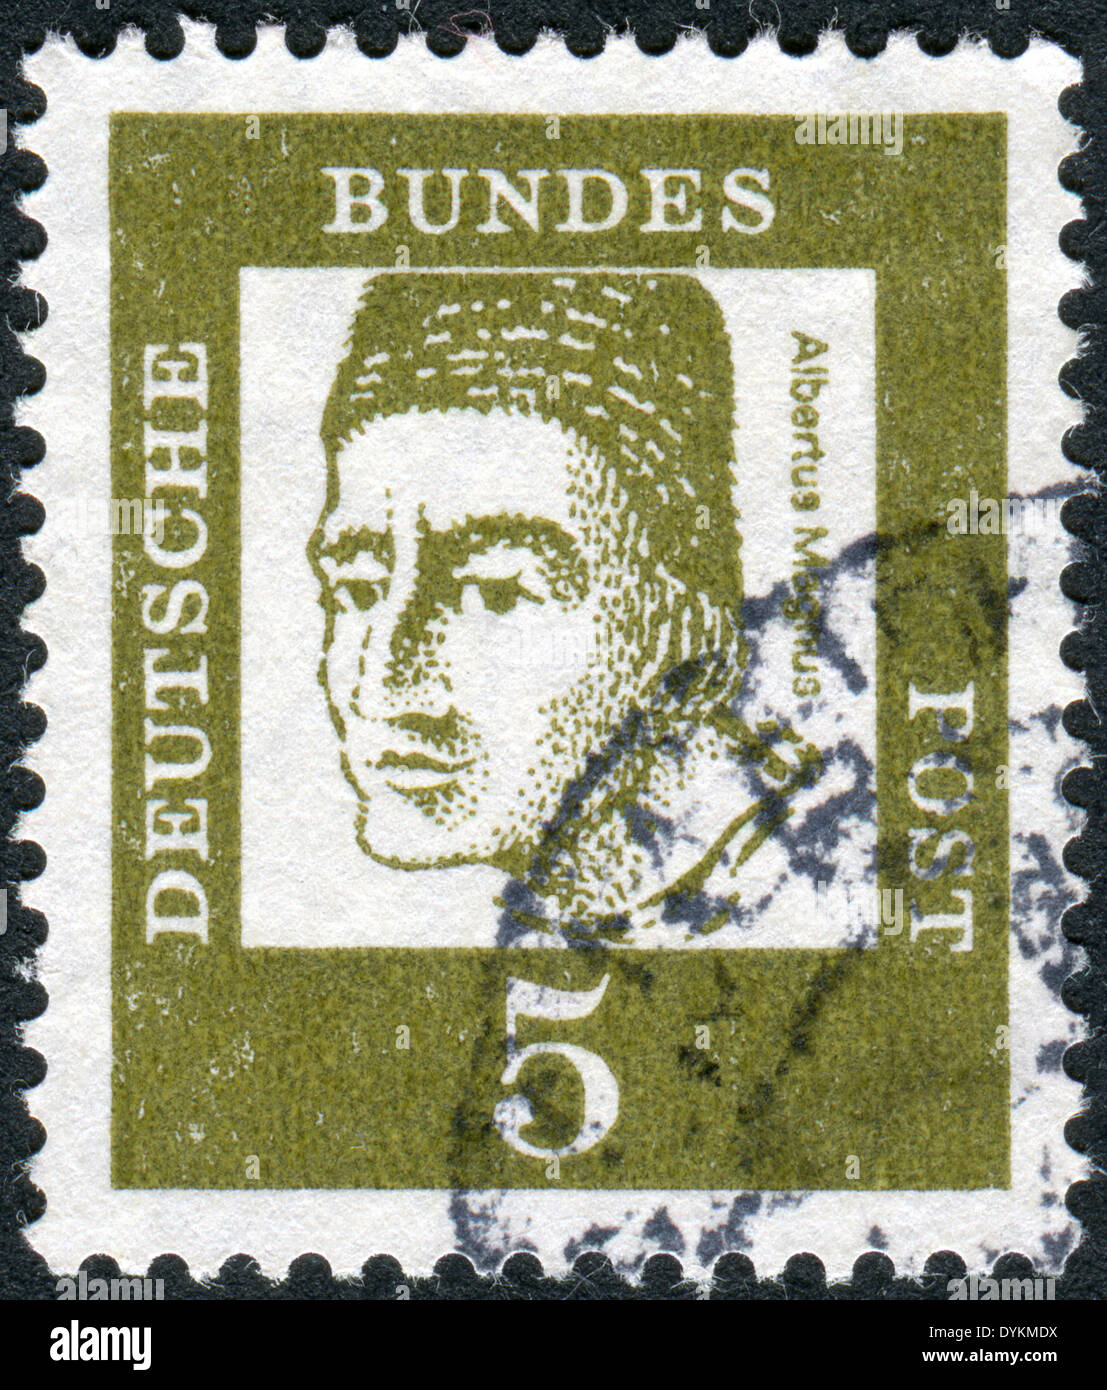 GERMANY - CIRCA 1961: Postage stamp printed in Germany, shows portrait of St. Albertus Magnus, circa 1961 - Stock Image